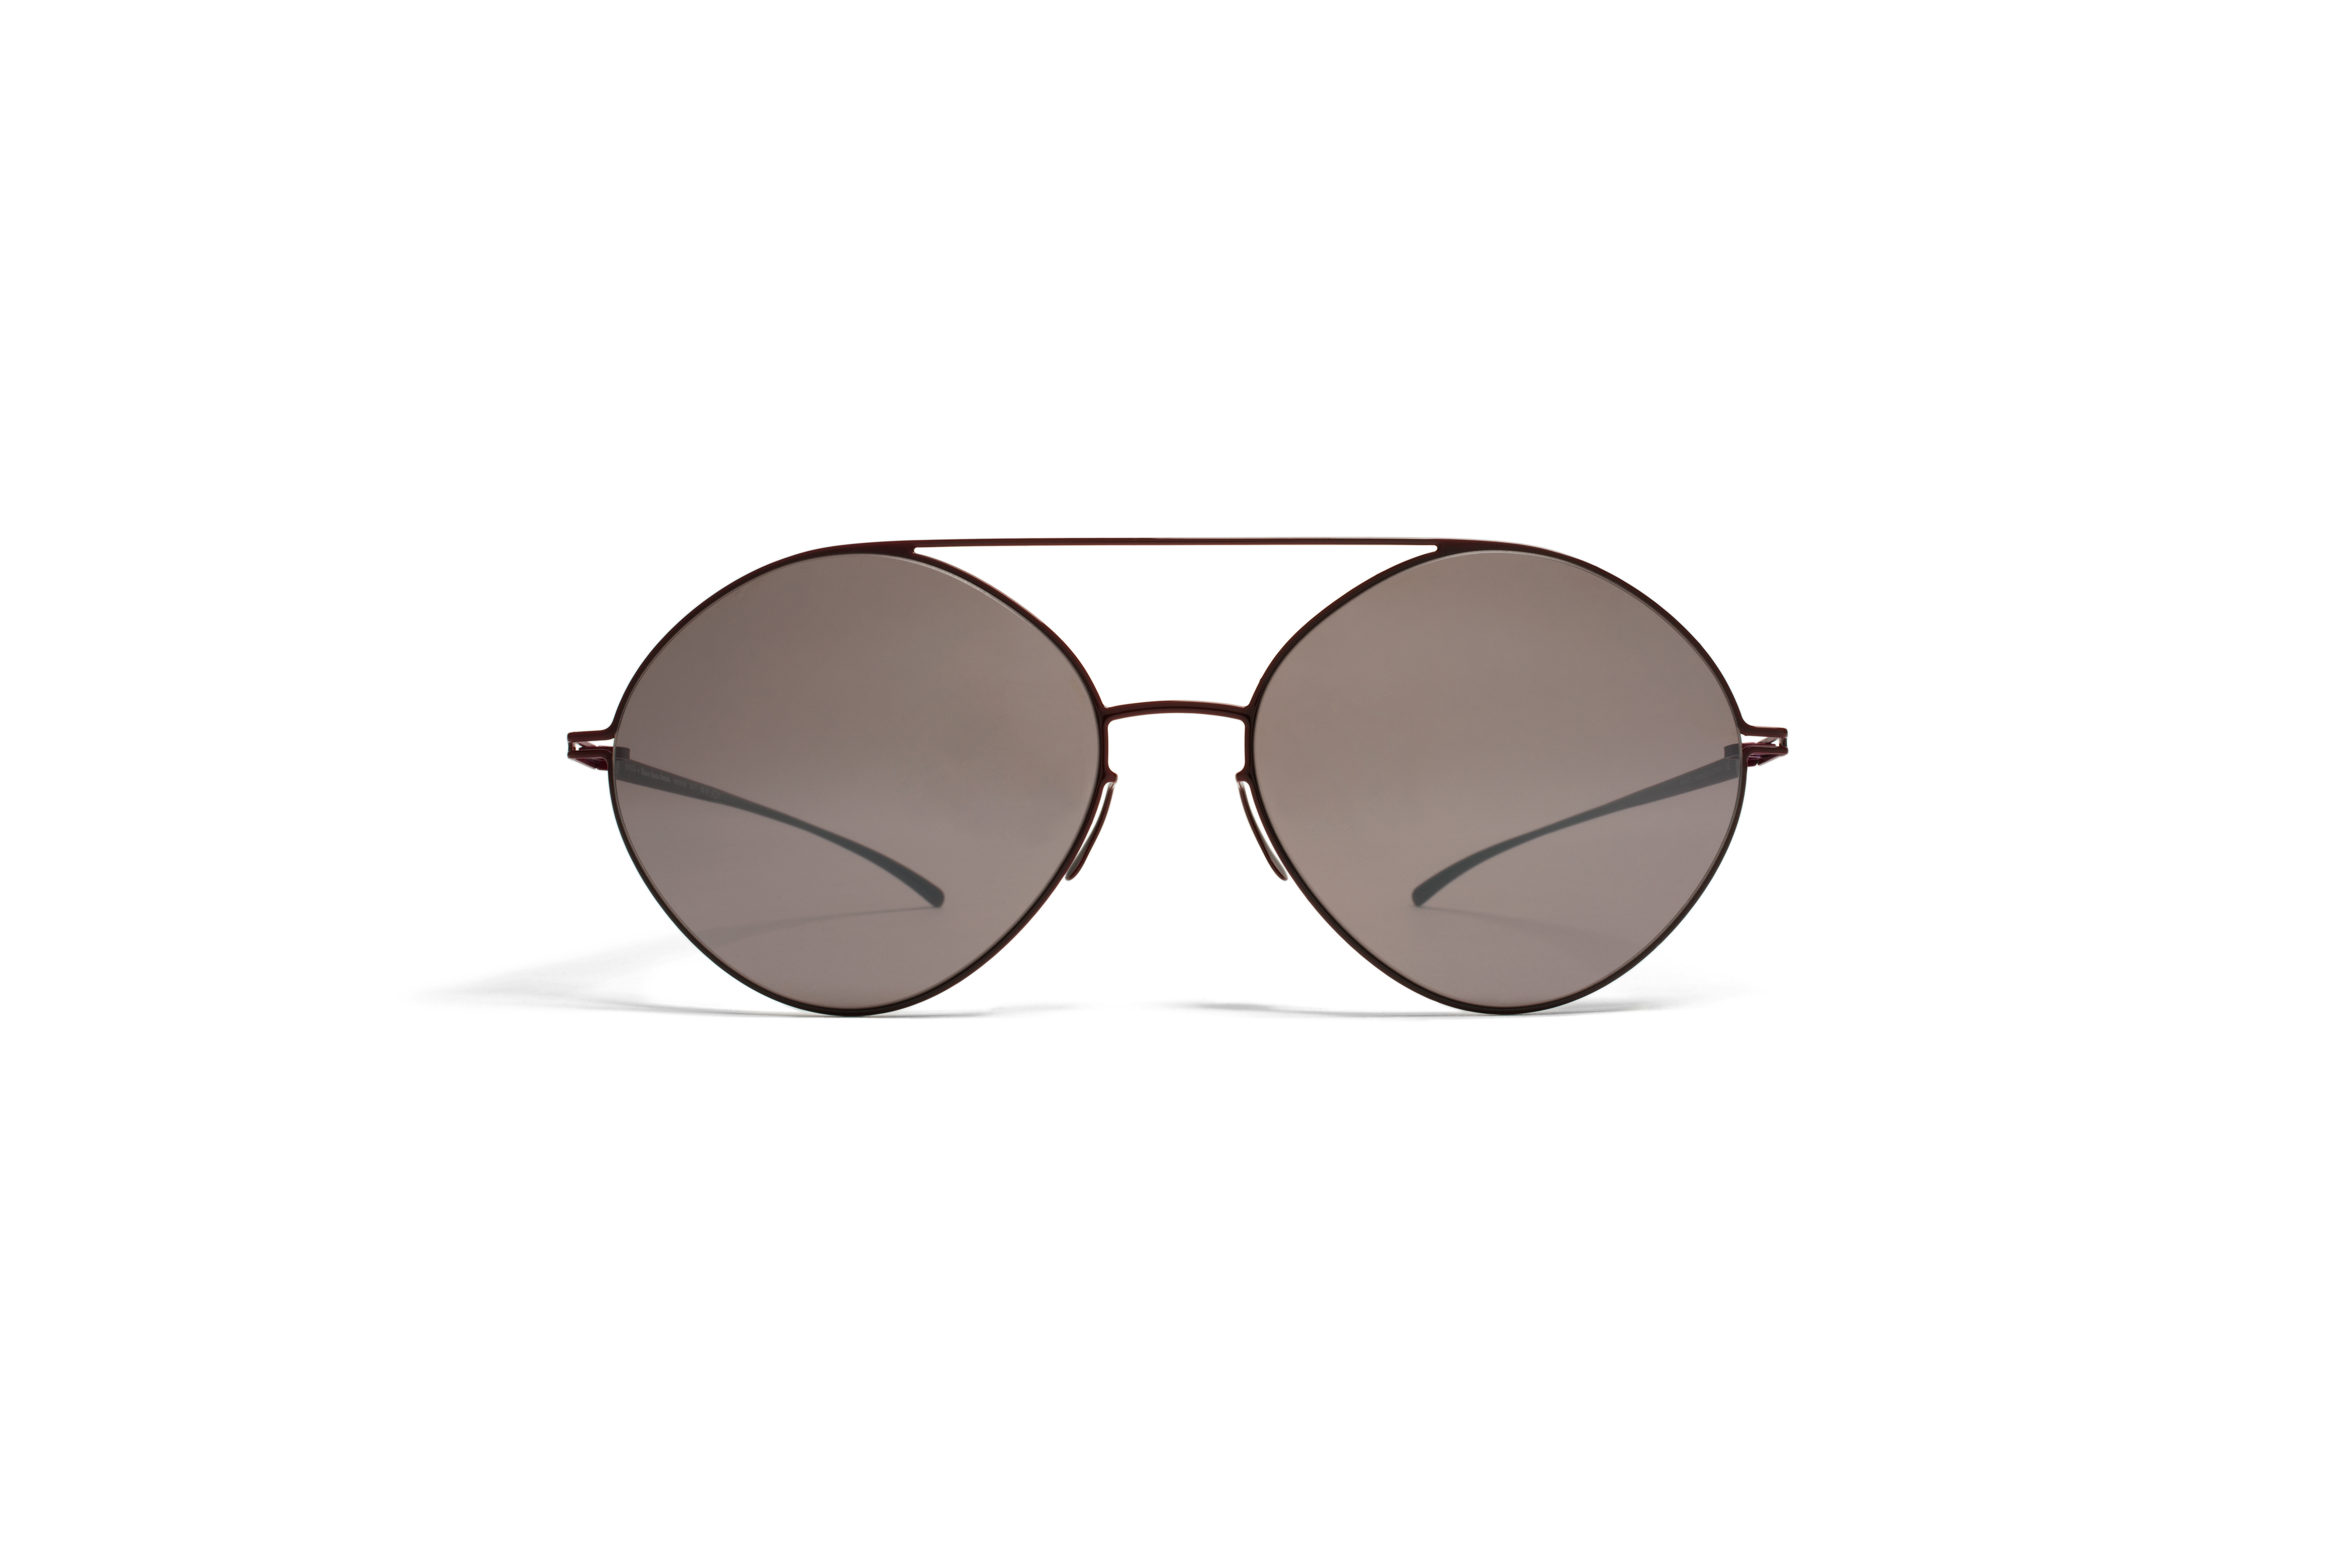 MYKITA Collmmm Sun Mmesse008 E7 Red Darkpurple Fla54f0d10786822